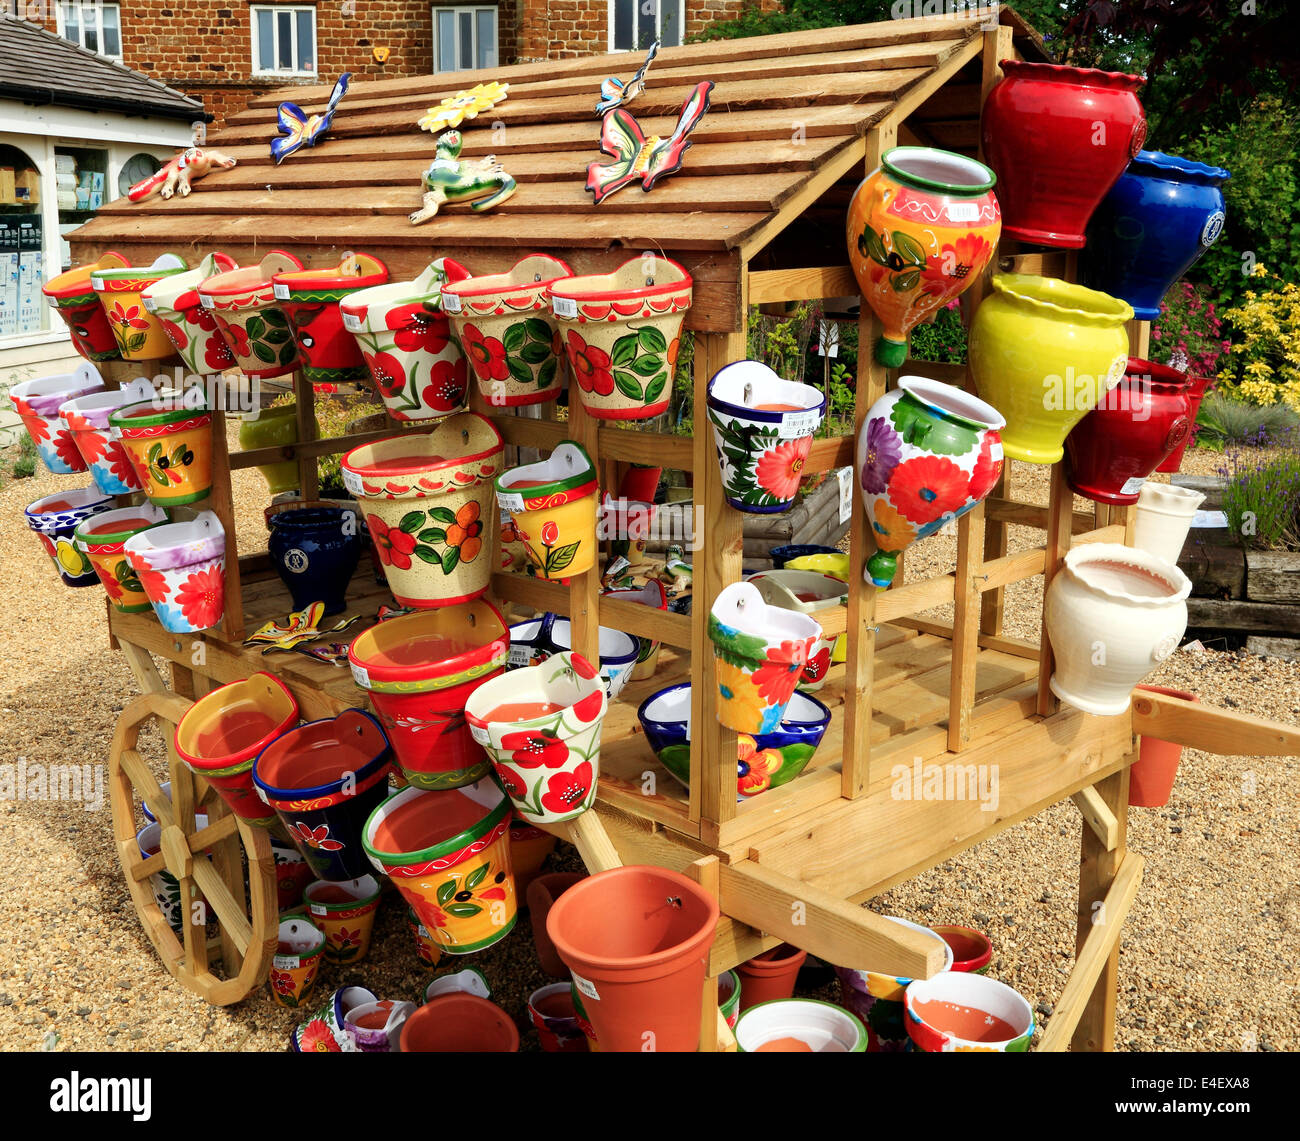 Colorful Garden Pots Colourful colorful decorative pots planters containers garden colourful colorful decorative pots planters containers garden nursery sales england uk workwithnaturefo